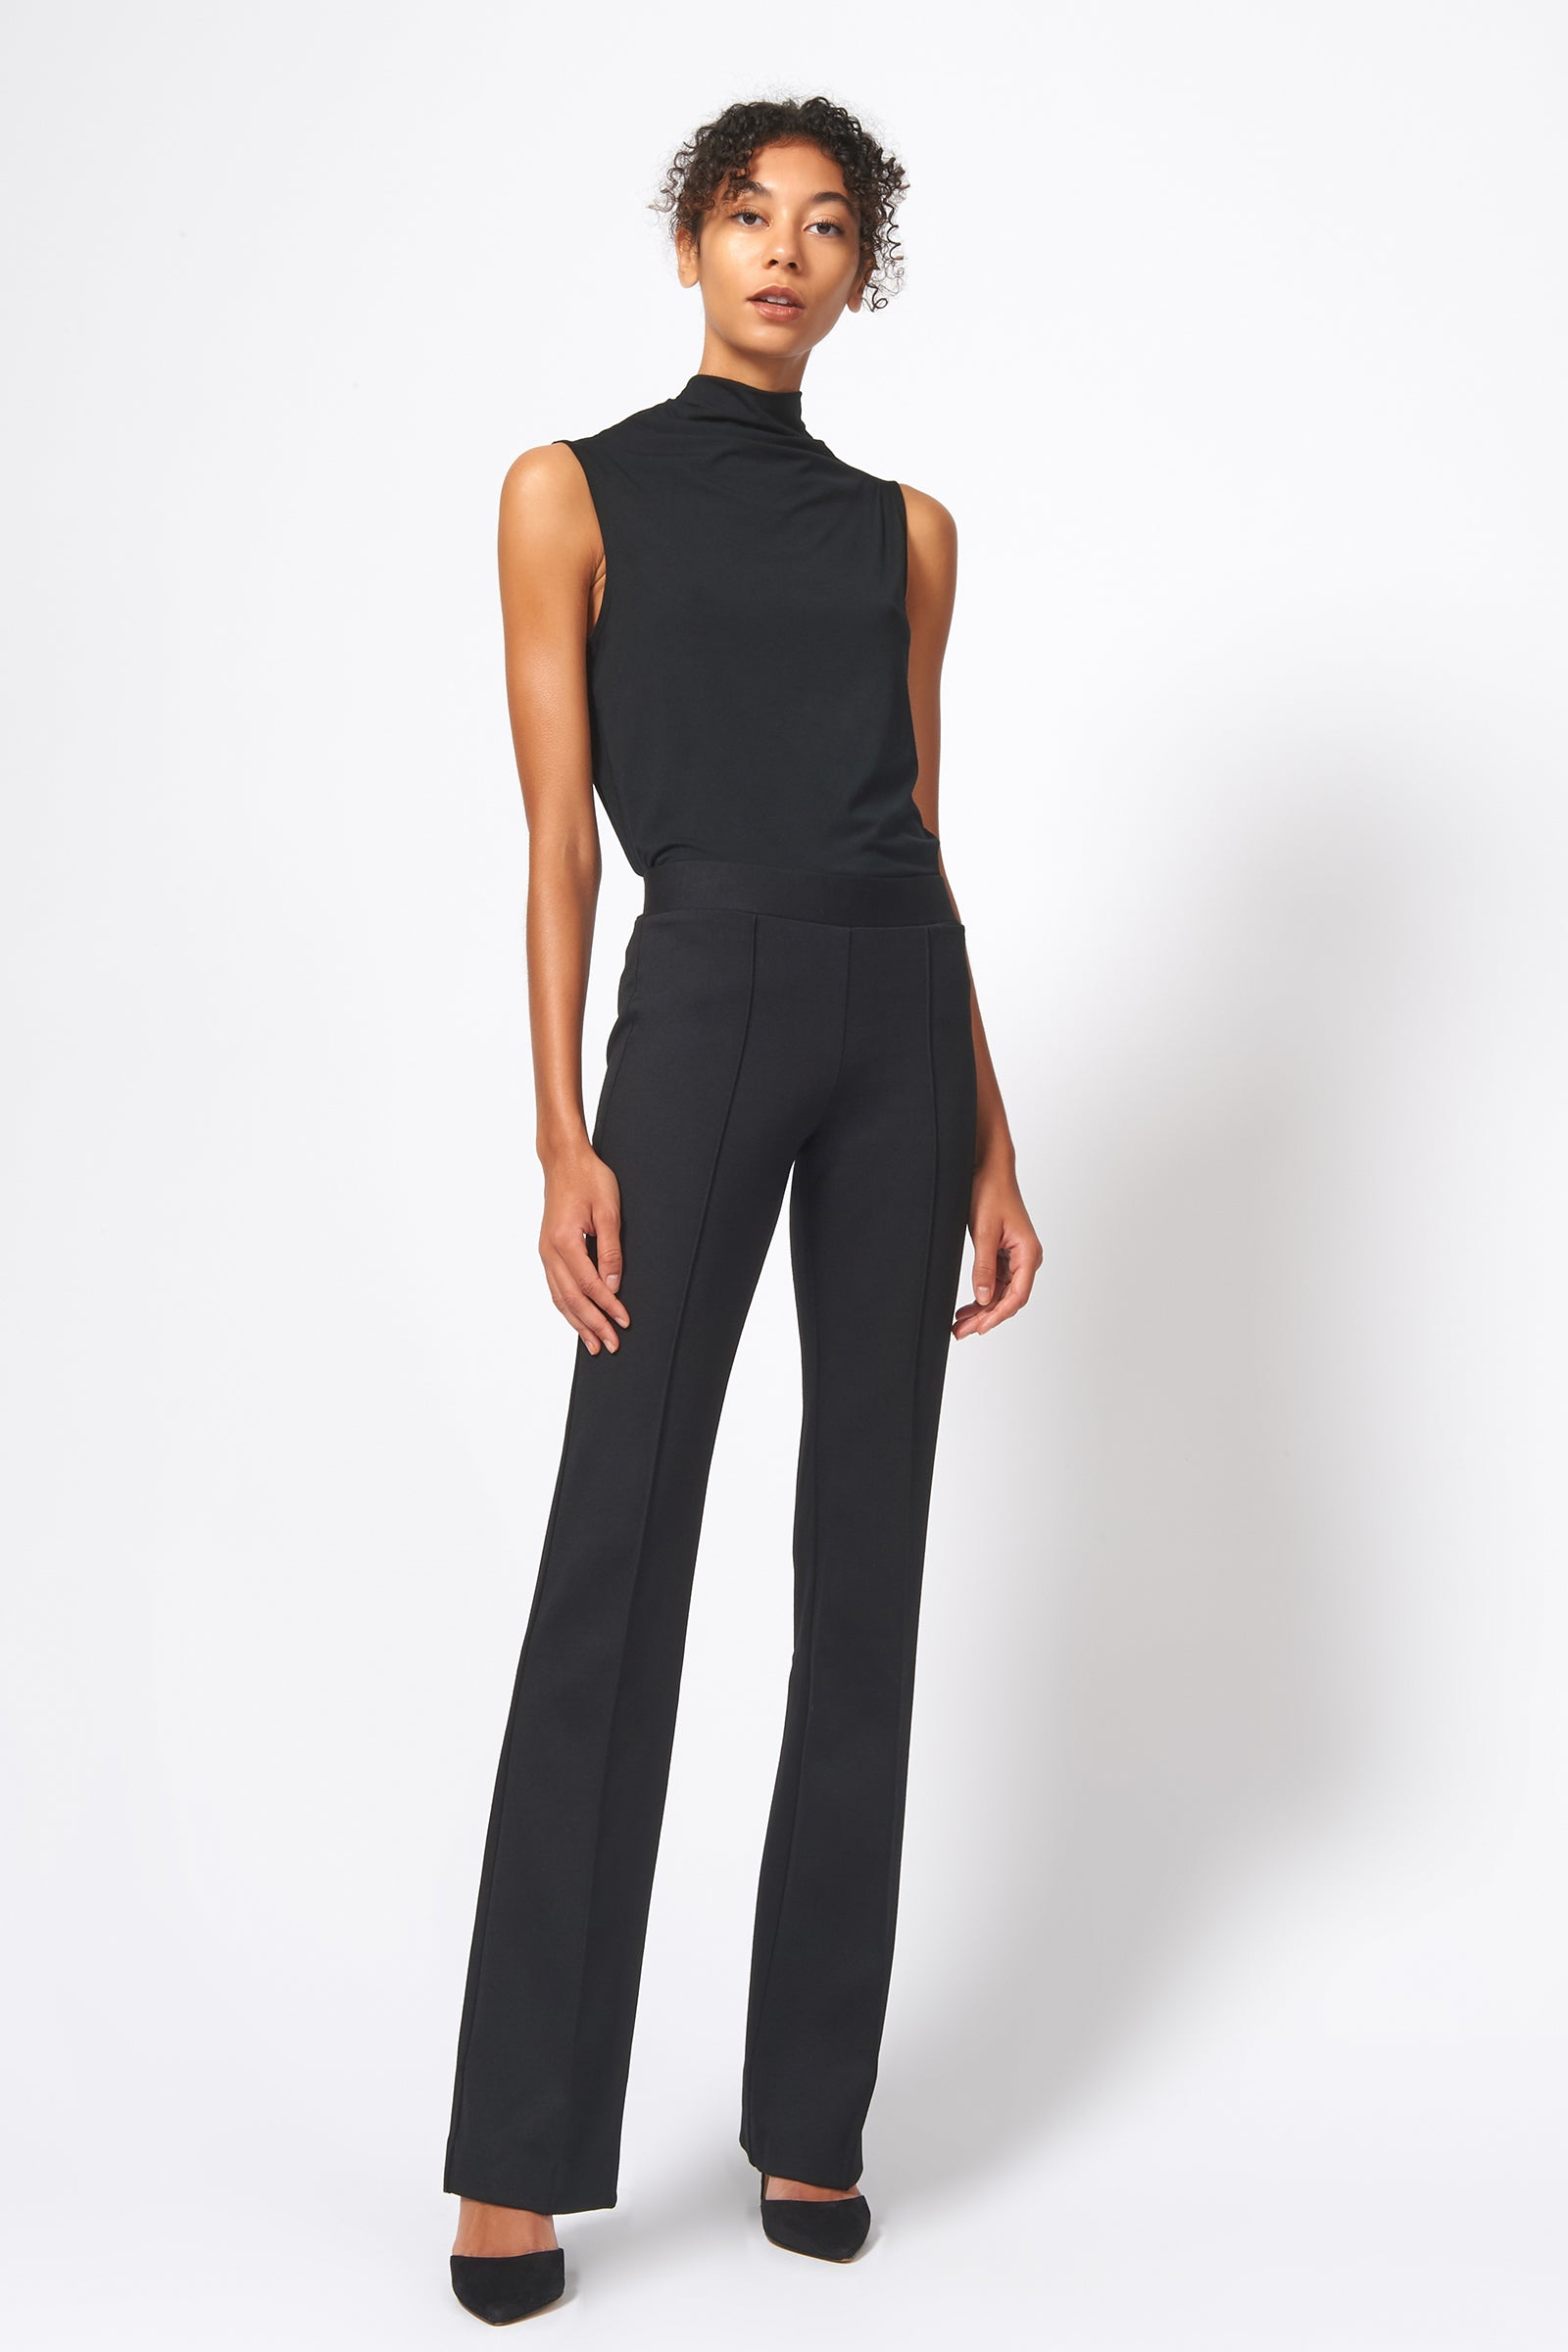 Kal Rieman Pintuck Ponte Column Pant in Black on Model Full Front Alternate View